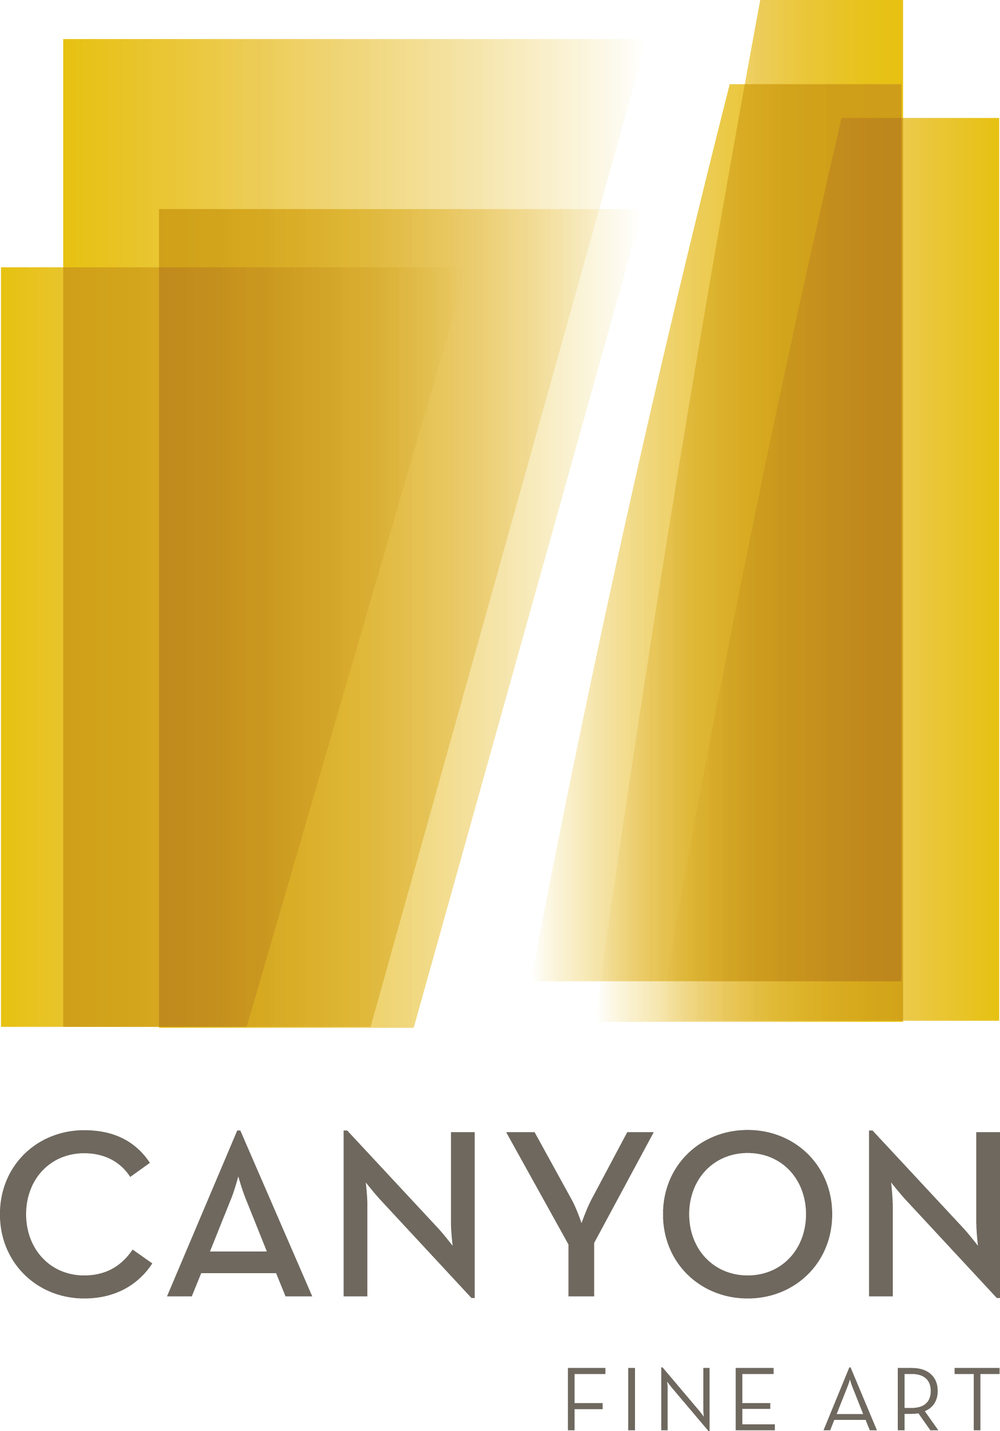 CANYON Fine Art